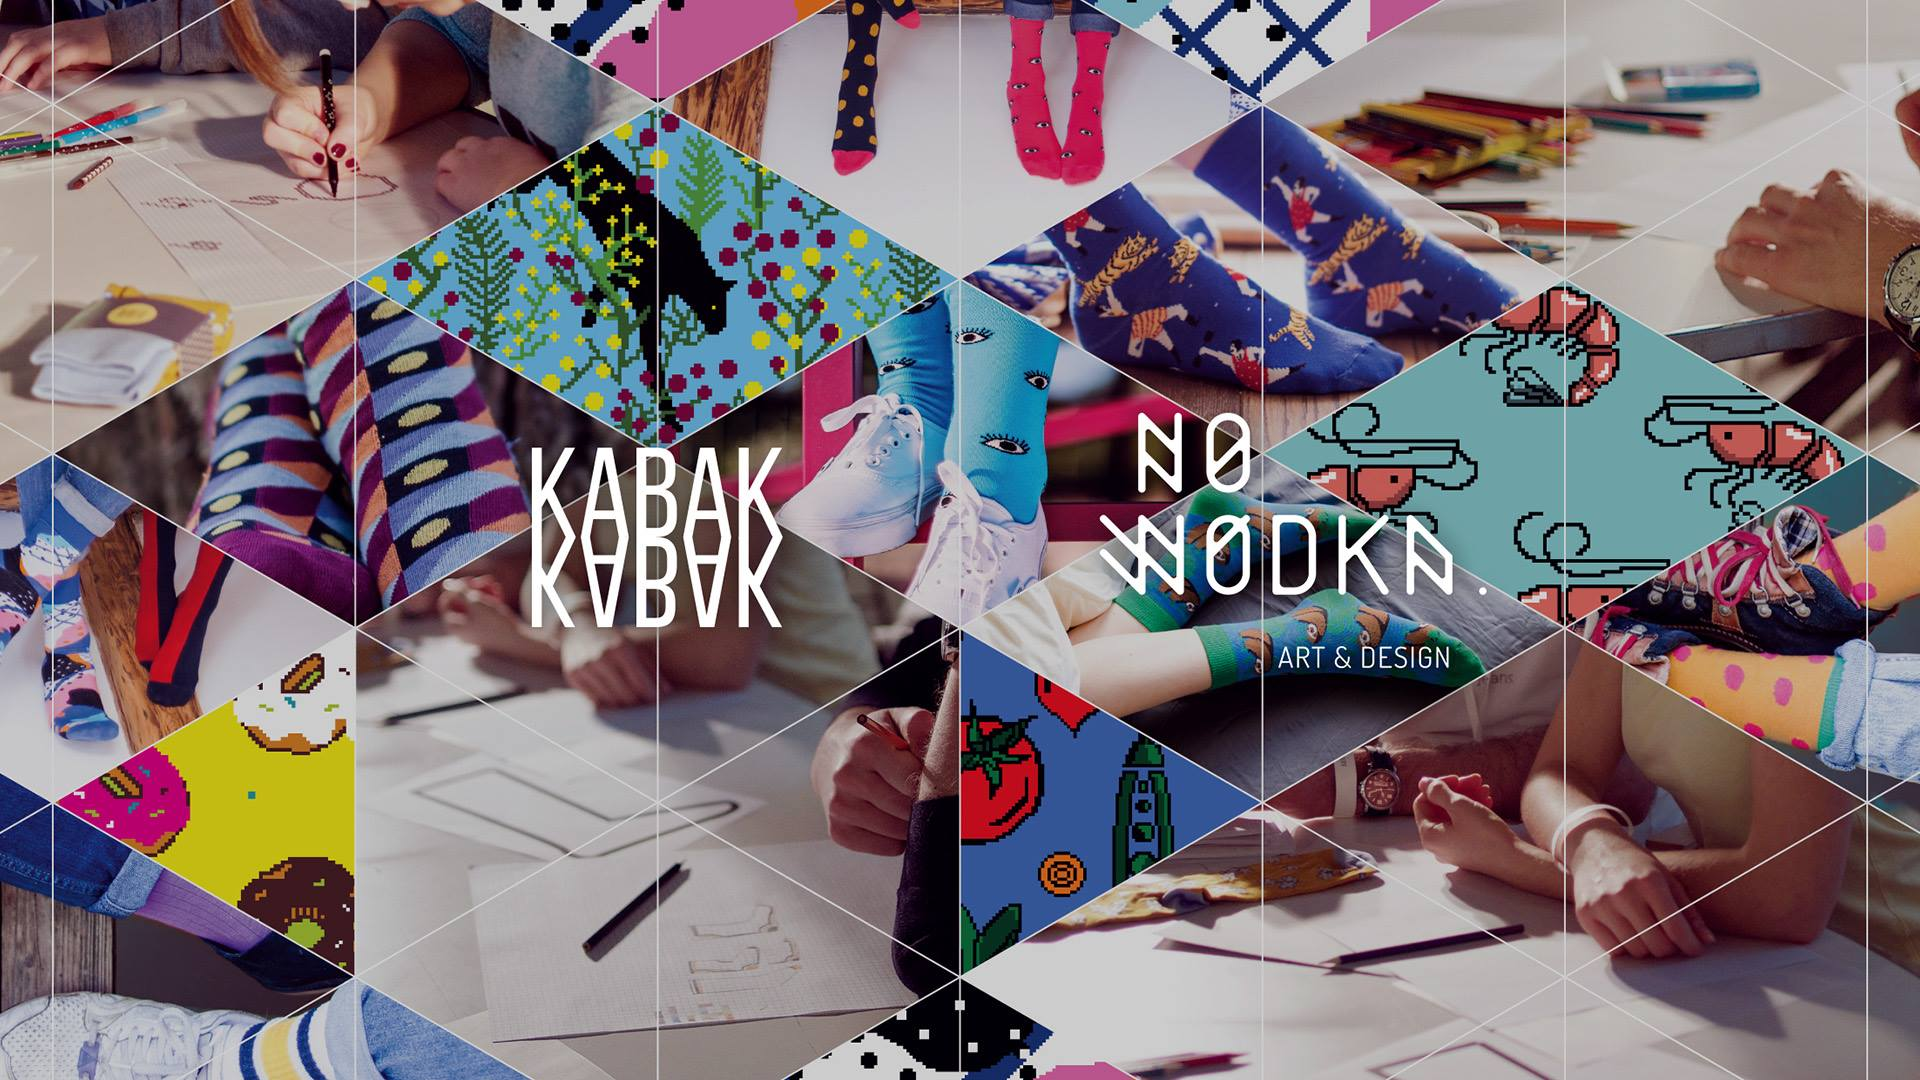 Design your own socks with KABAK – workshop